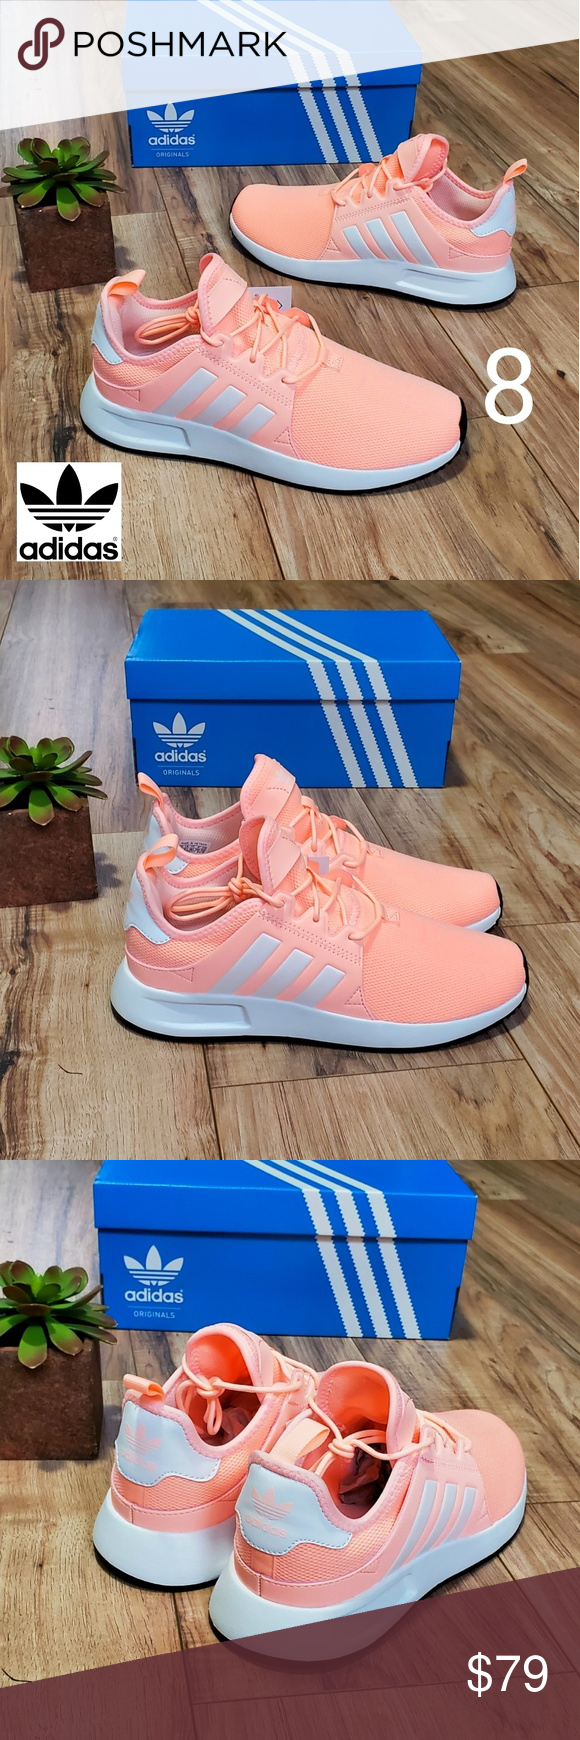 Adidas X PLR Womens 8 BRAND NEW NEVER USED!!!????????️ WITH BOX